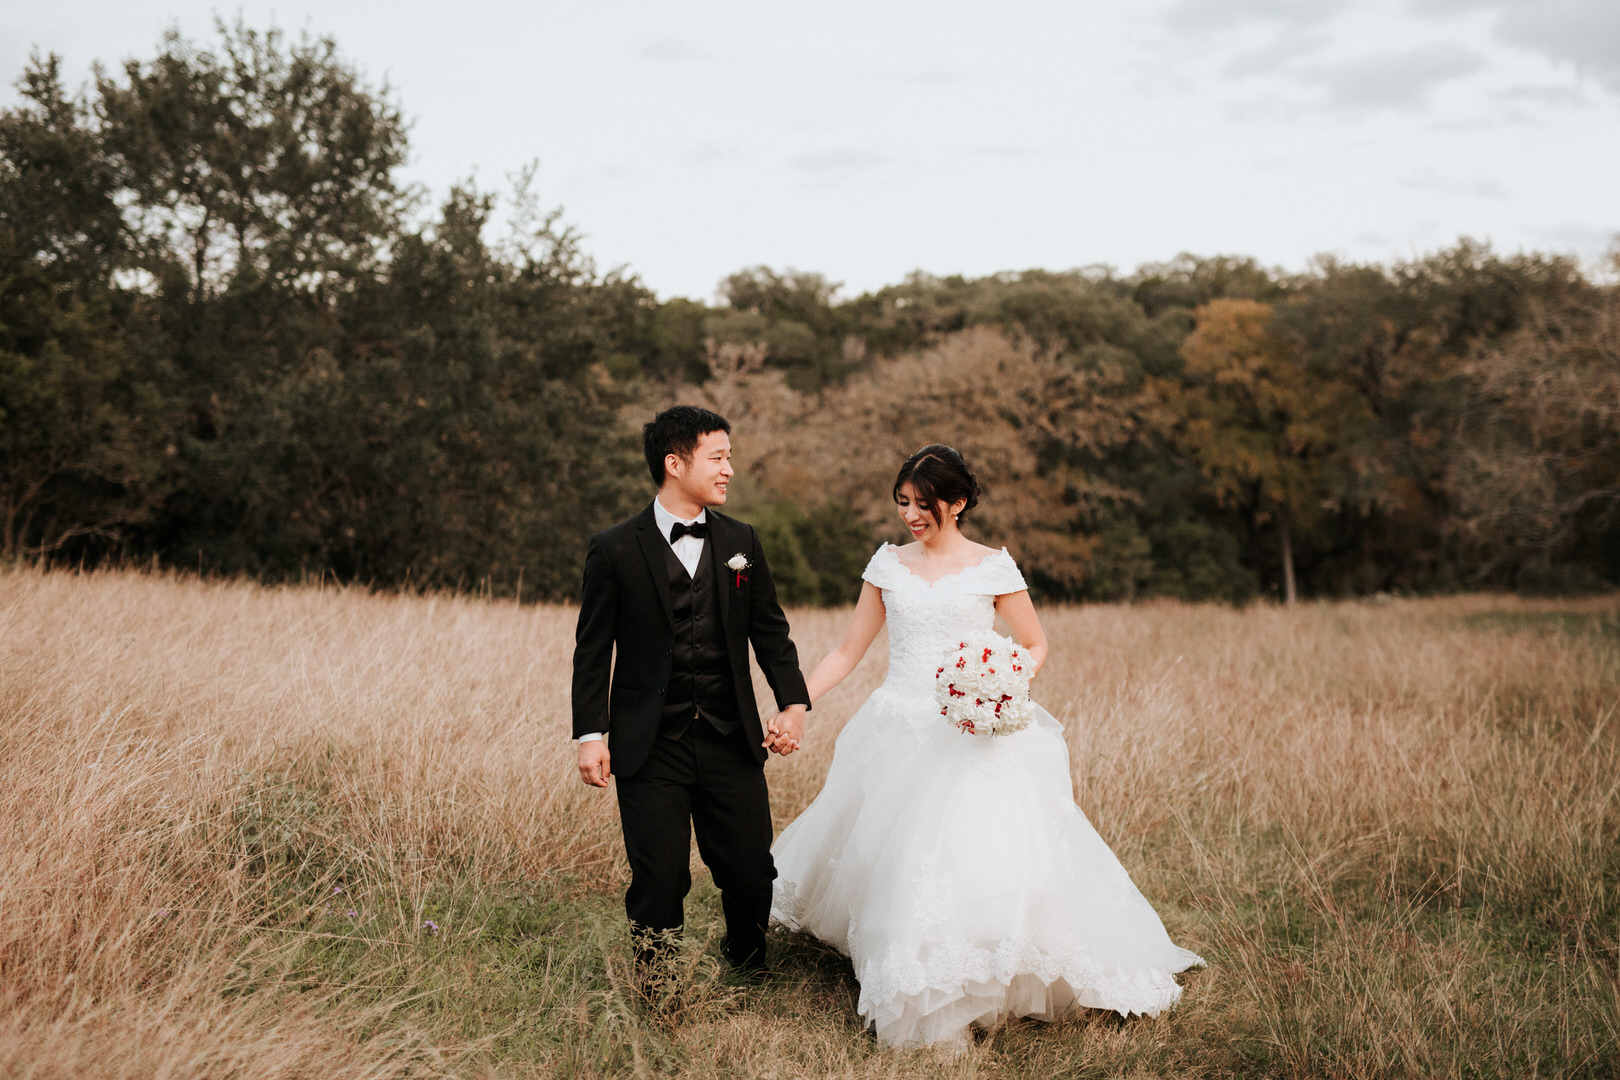 Krissy and Harry - Diana Ascarrunz Photography-657.jpg